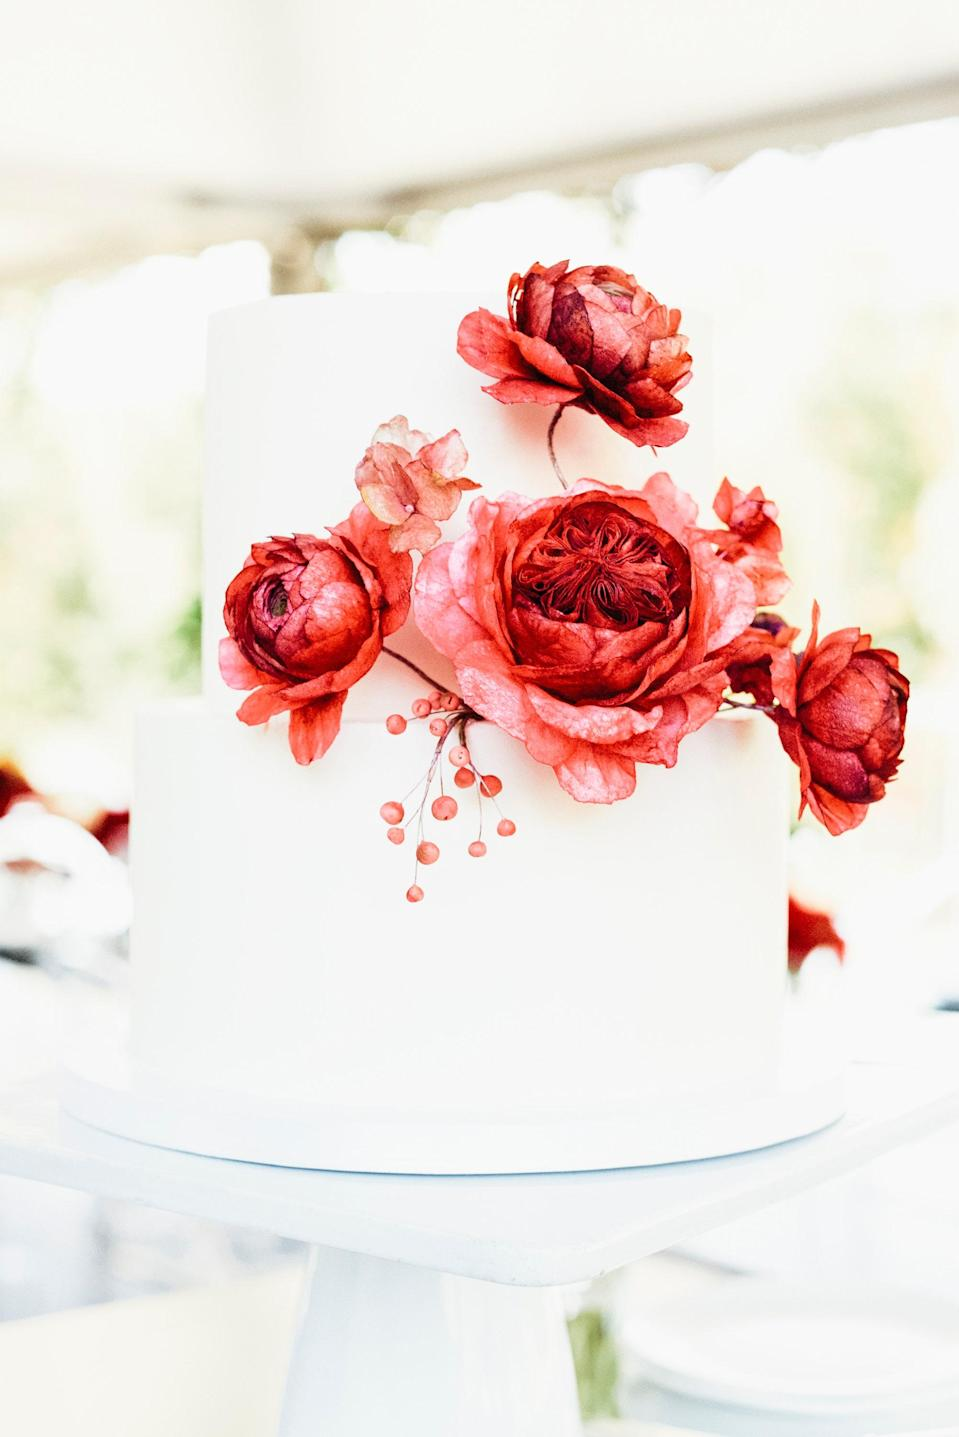 """<a href=""""https://www.millersandmakers.com/"""" rel=""""nofollow noopener"""" target=""""_blank"""" data-ylk=""""slk:Millers & Makers"""" class=""""link rapid-noclick-resp"""">Millers & Makers</a> made us a beautiful and delicious chocolate cake with vanilla icing. Each guest had their own mini version of this cake at their place-setting."""